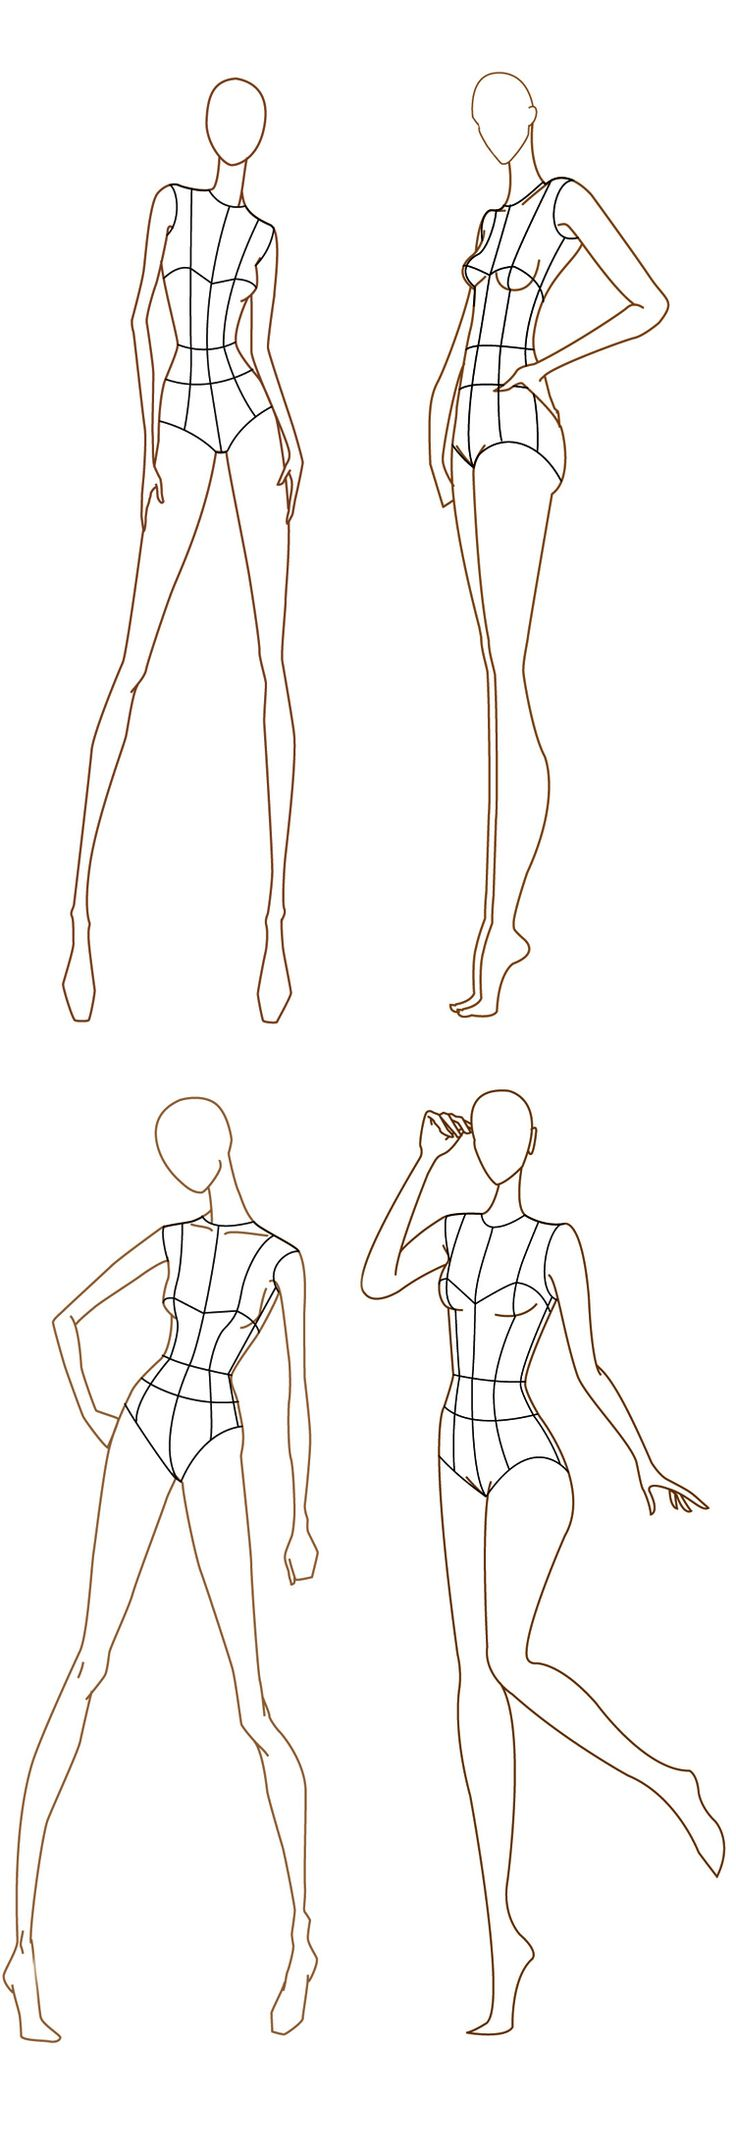 pin by mariana blanco on sewing pinterest With fashion designing templates free download